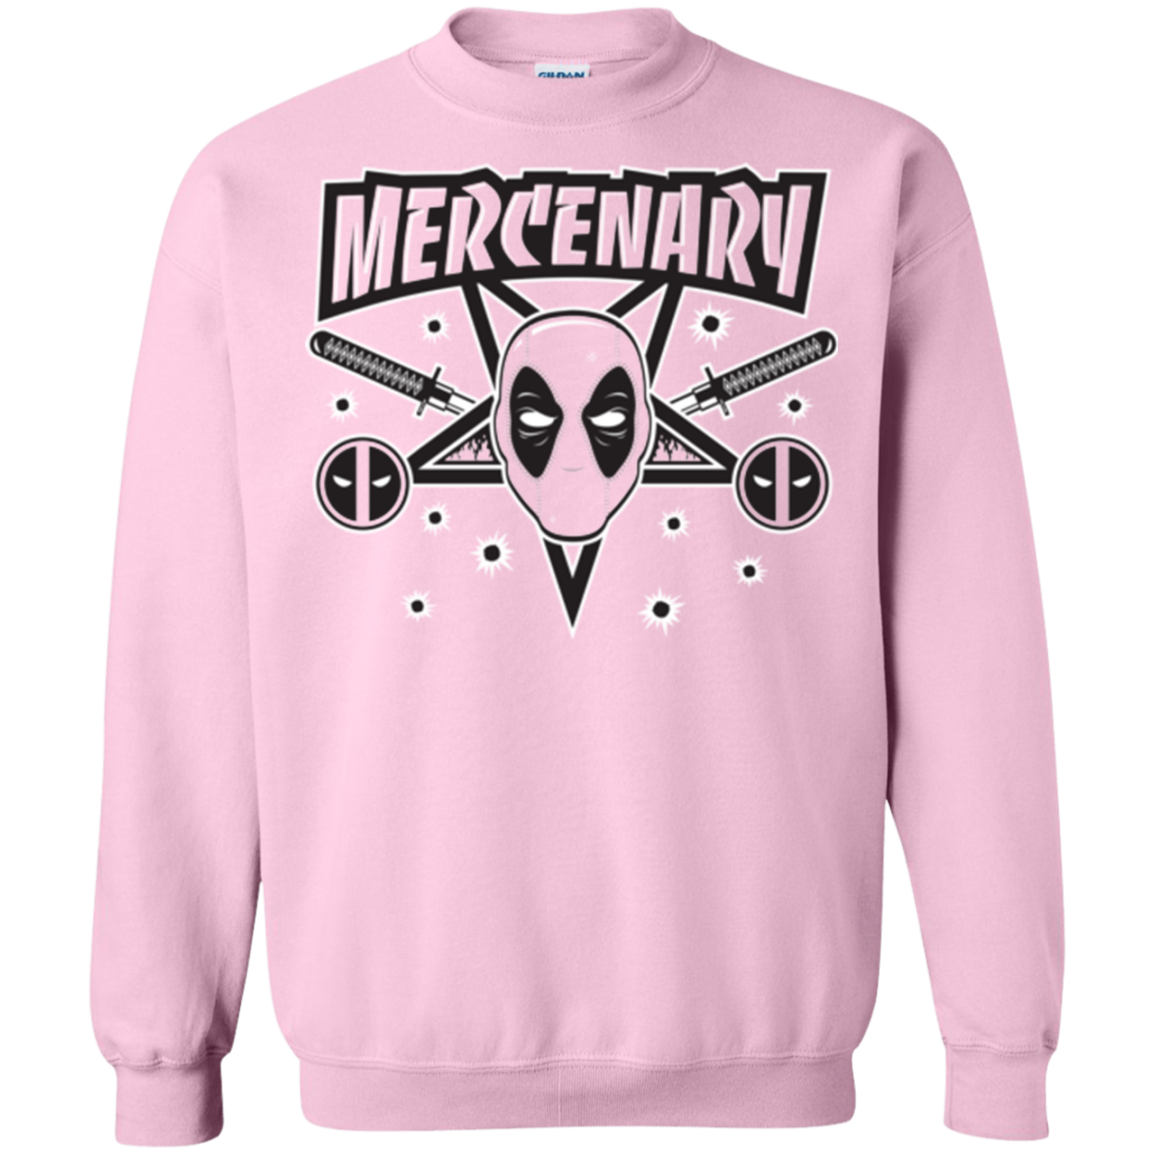 Mercenary (1) Crewneck Sweatshirt